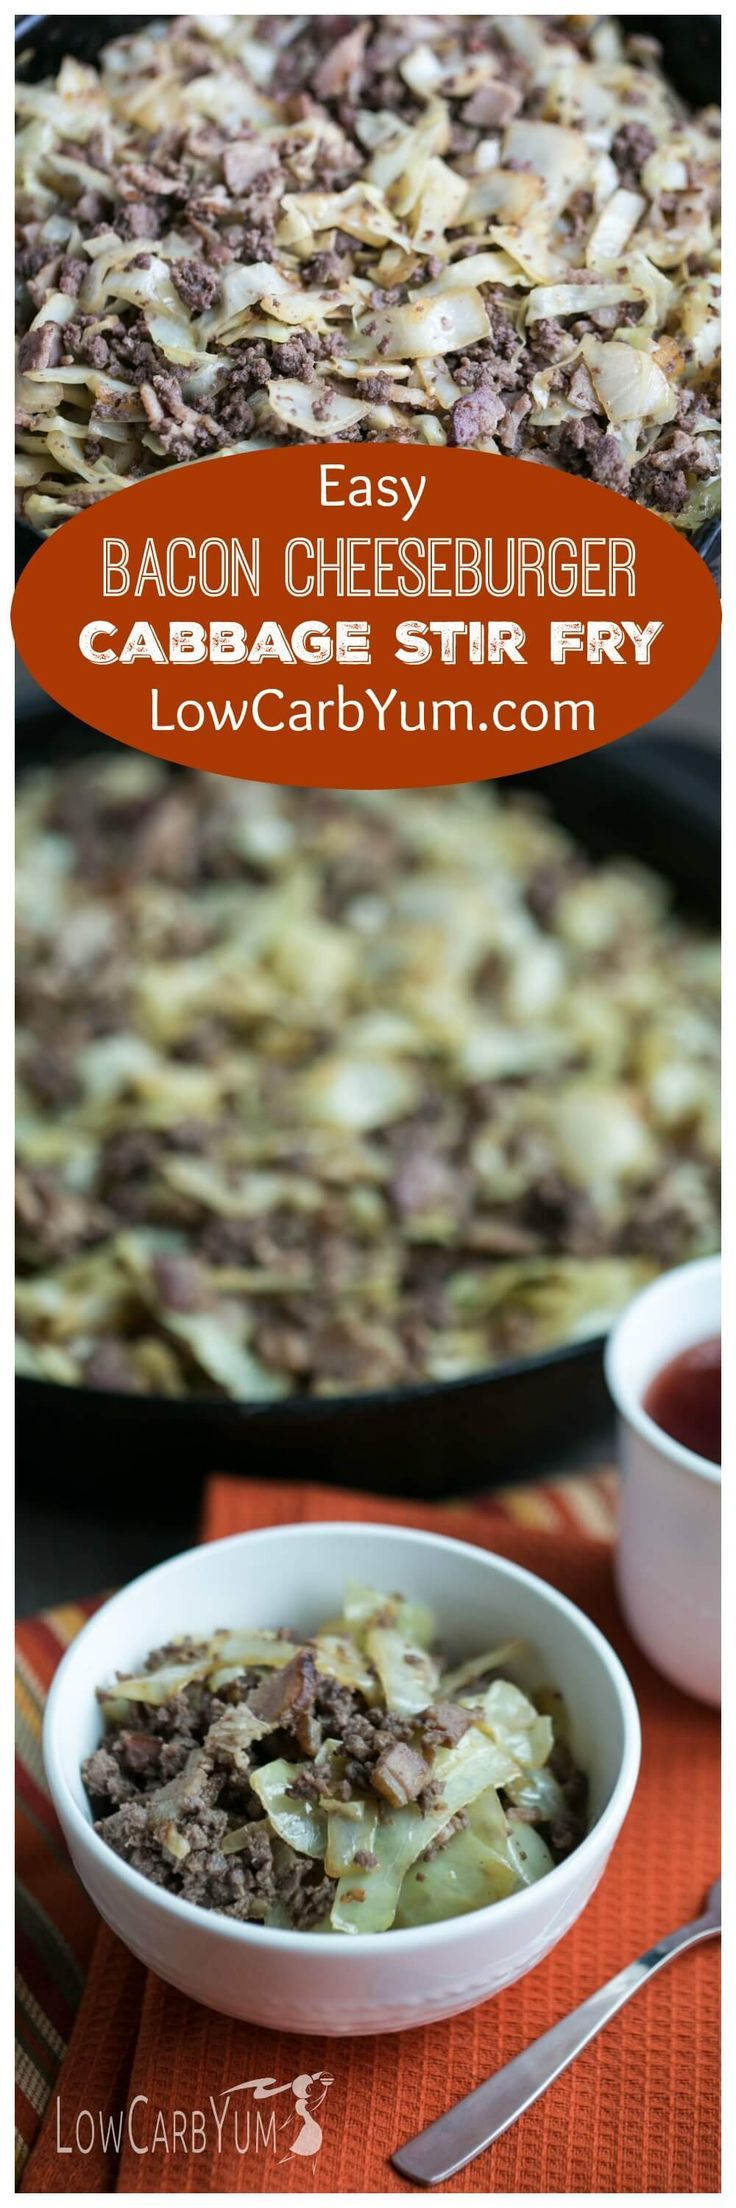 Short on time? It only takes about 20 minutes to whip up a delicious low carb bacon burger cabbage stir fry skillet dish that the whole family will love.